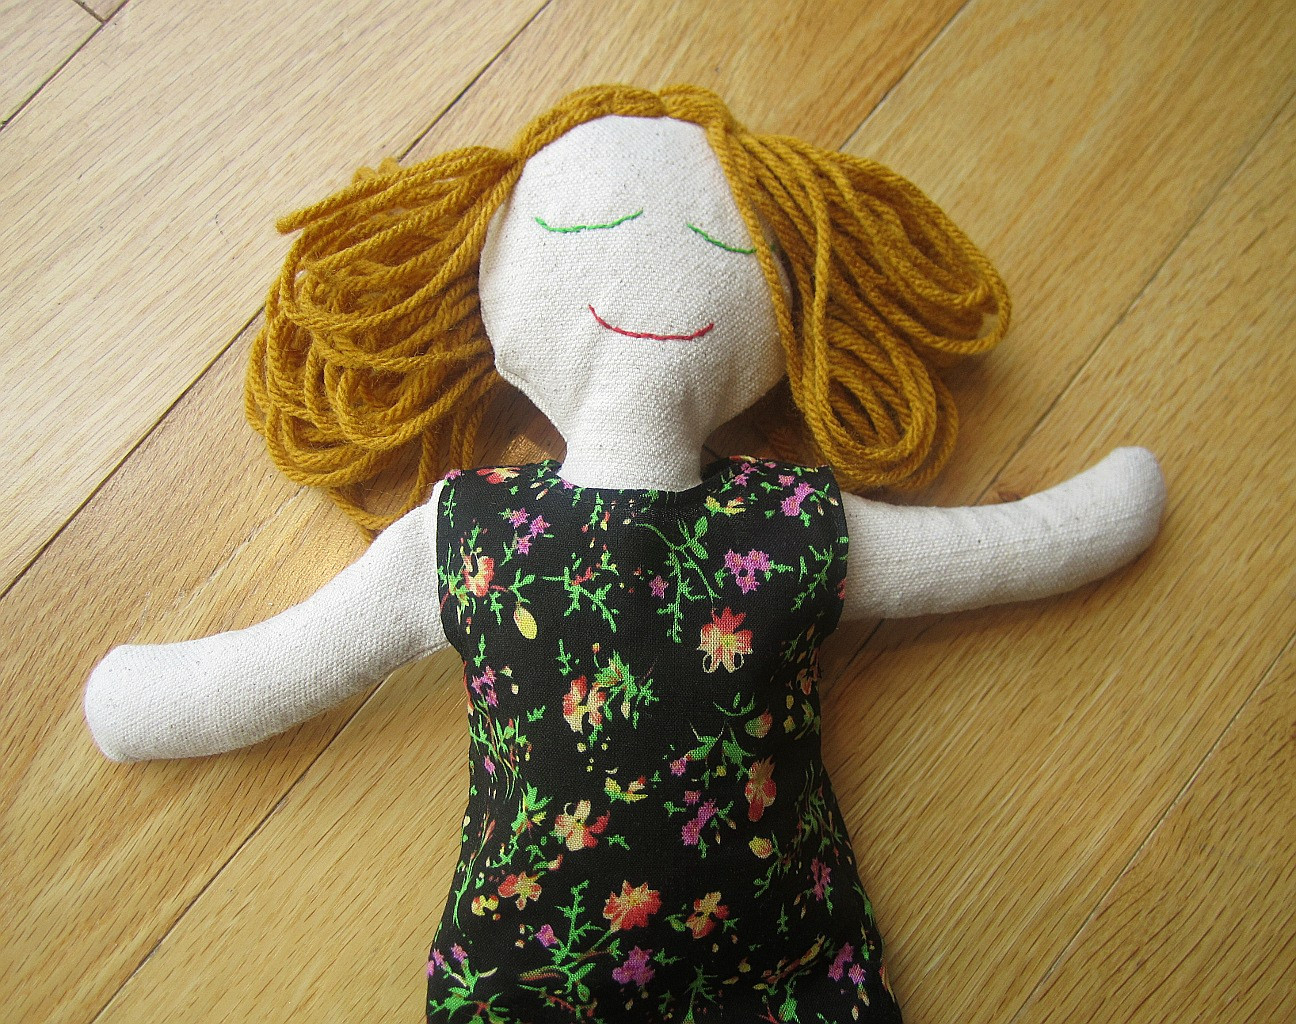 Doll Patterns Elegant Rag Doll Free Sewing Pattern and Instructions Of Doll Patterns Best Of Gingermelon Dolls My Felt Doll Knitted Outfit Patterns